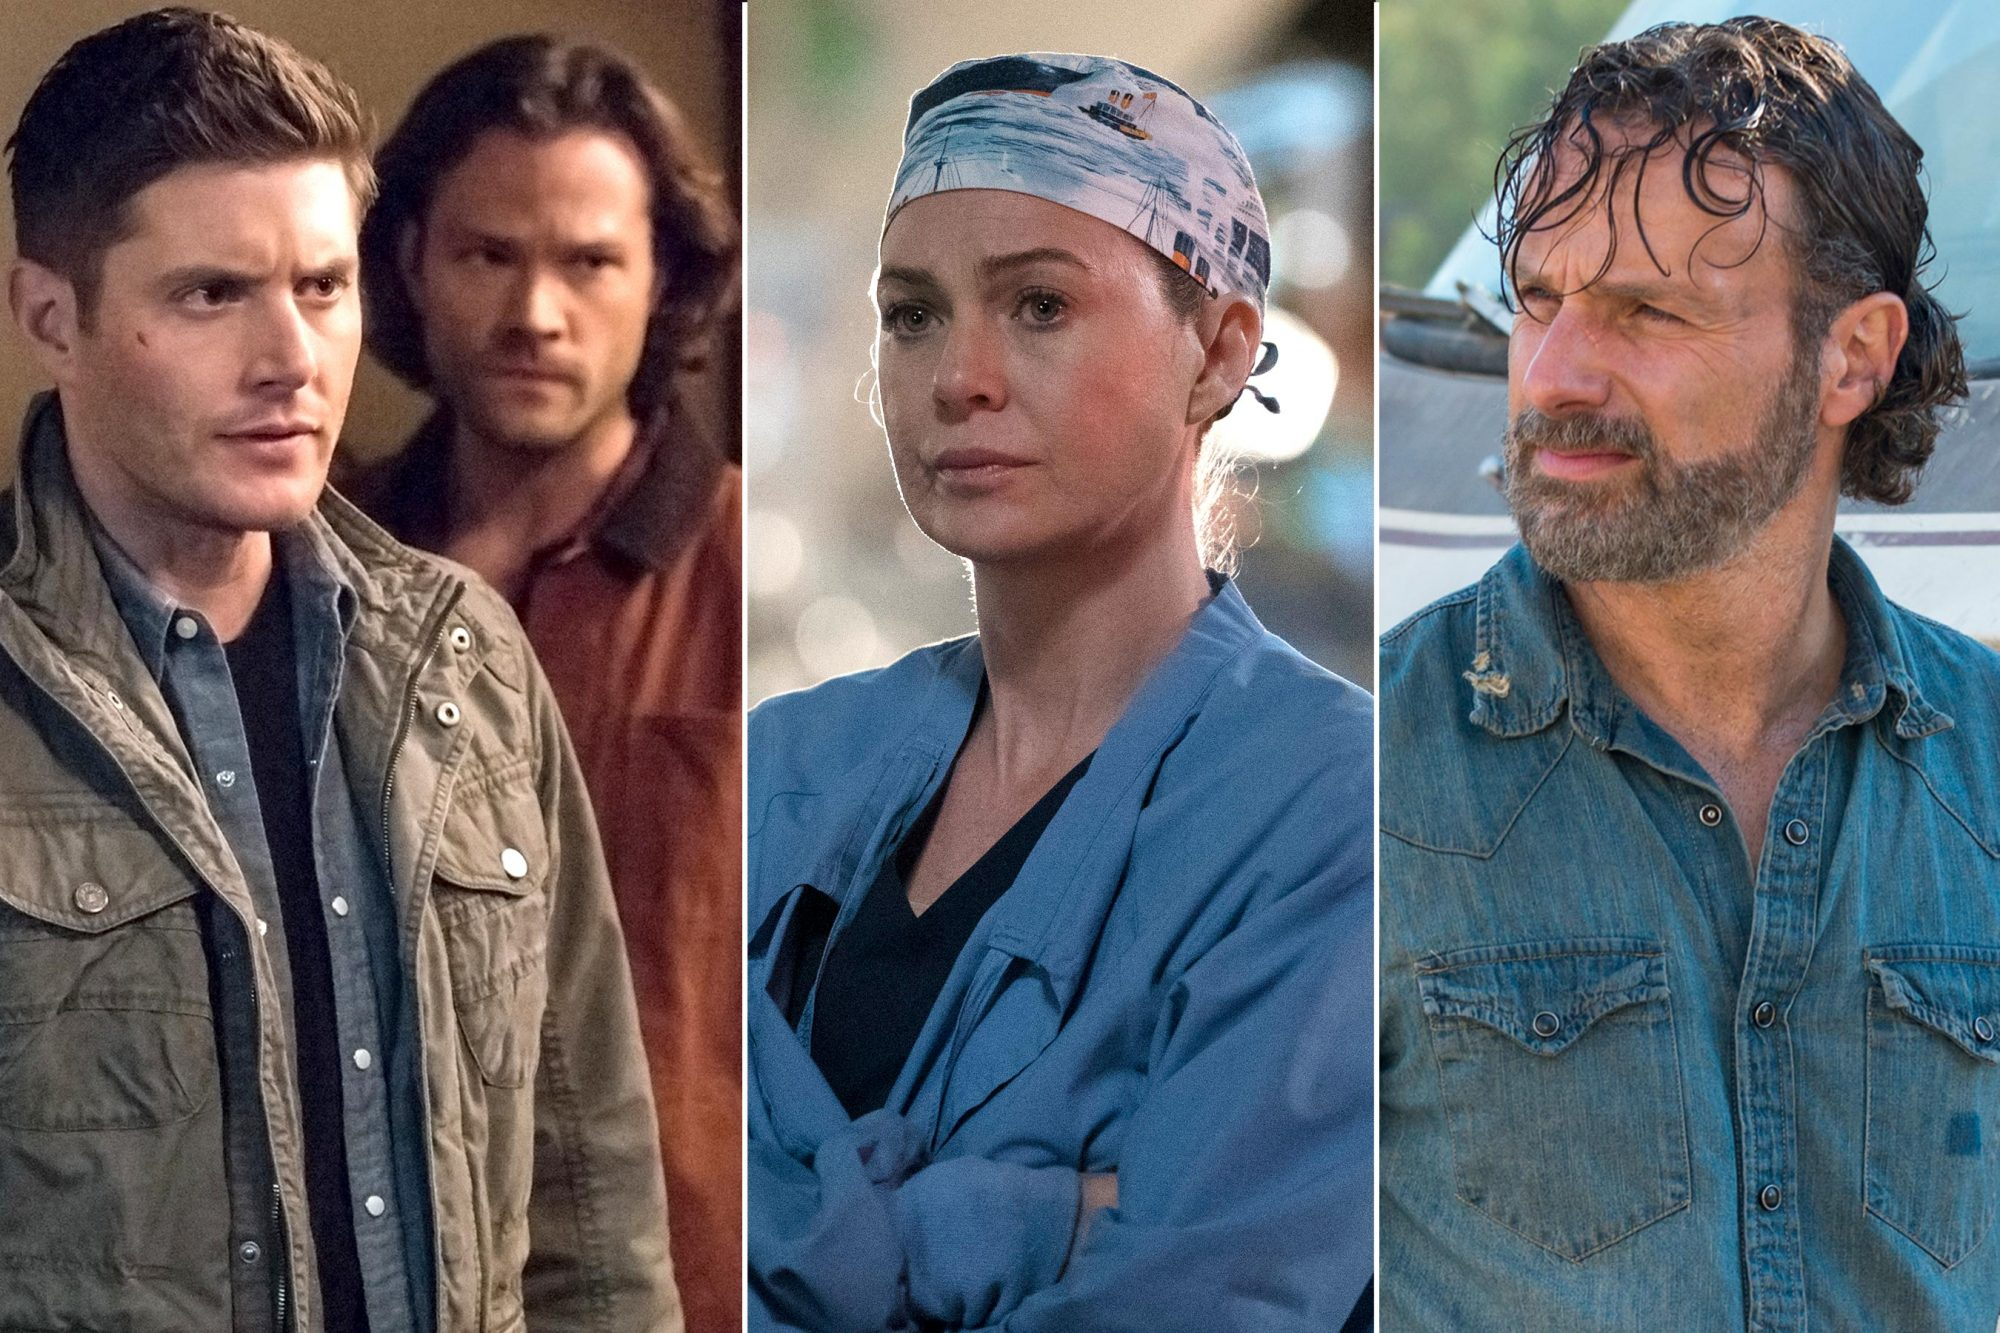 Supernatural, Grey's Anatomy and The Walking Dead